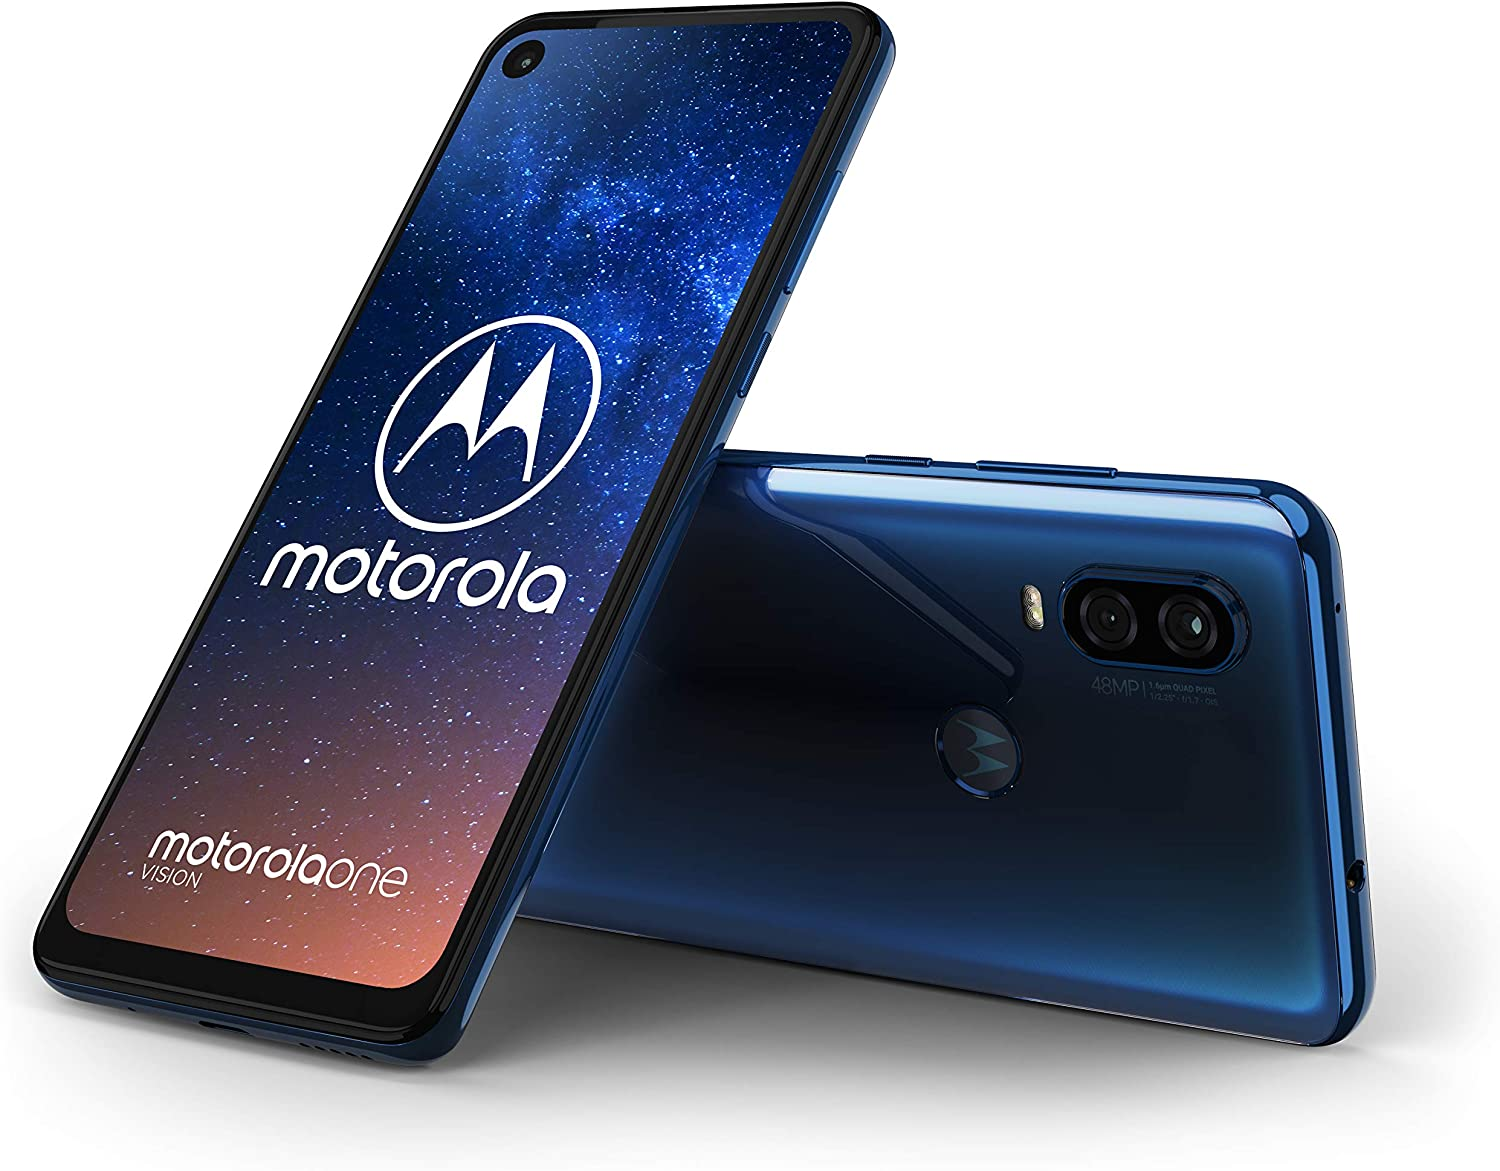 "Motorola moto one vision, 6.3"" CinemaVision FHD+ display, 48Mp sensor with Night vision, UK Sim-Free Smartphone with 4GB RAM and 128GB Storage (Dual Sim) – sapphire blue"